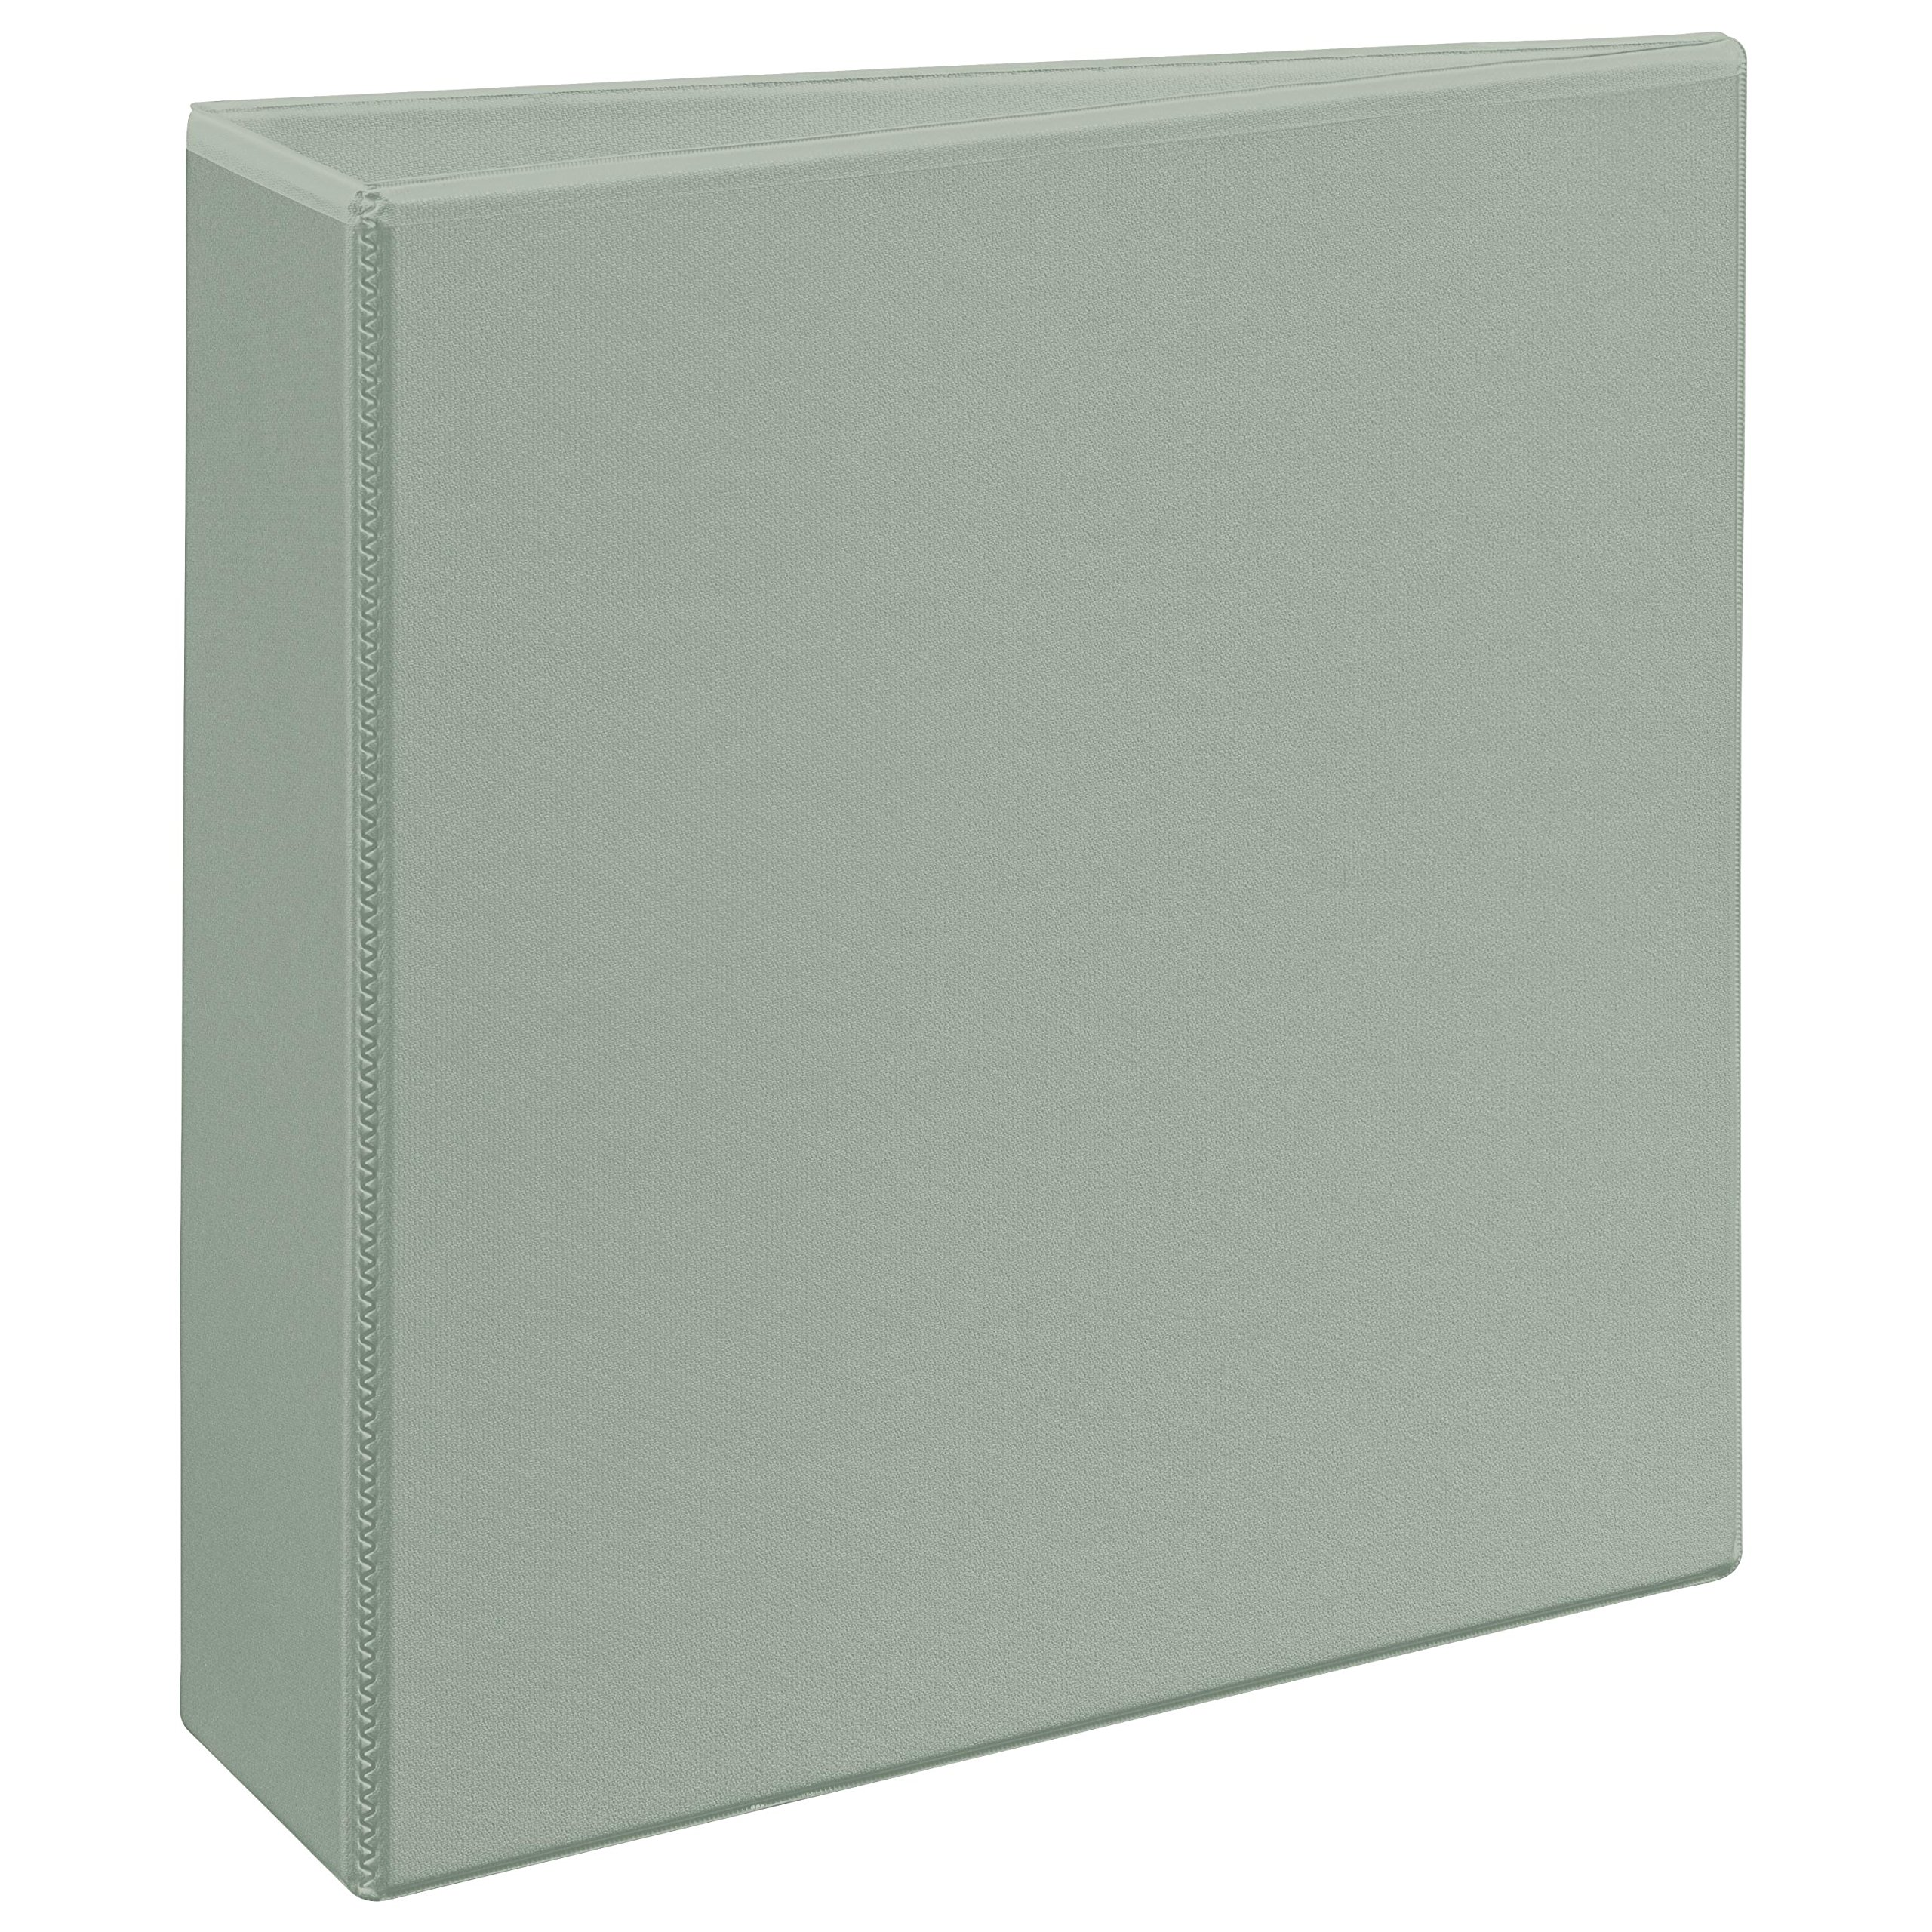 Avery Heavy-Duty Nonstick View Binder, 3'' One Touch Slant Rings, 600-Sheet Capacity, DuraHinge, Shadow Gray (05603)